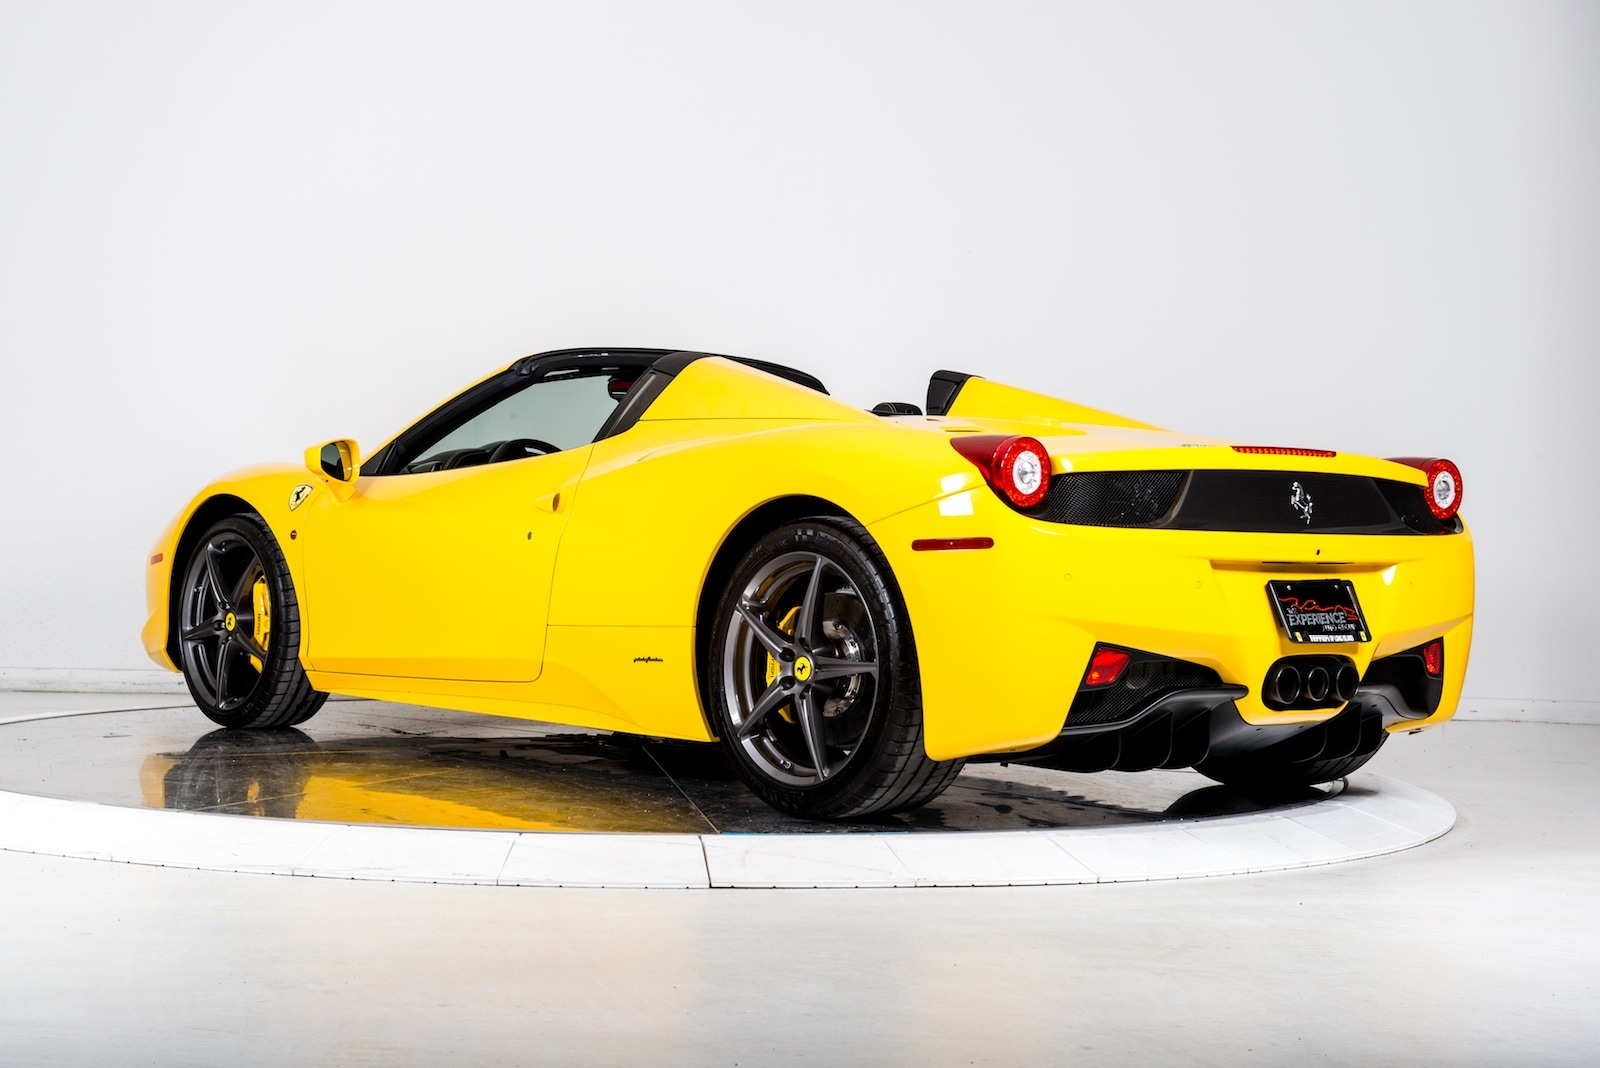 2014 ferrari 458 spider conv for sale in plainview ny at maserati of long island - Ferrari 2014 Yellow